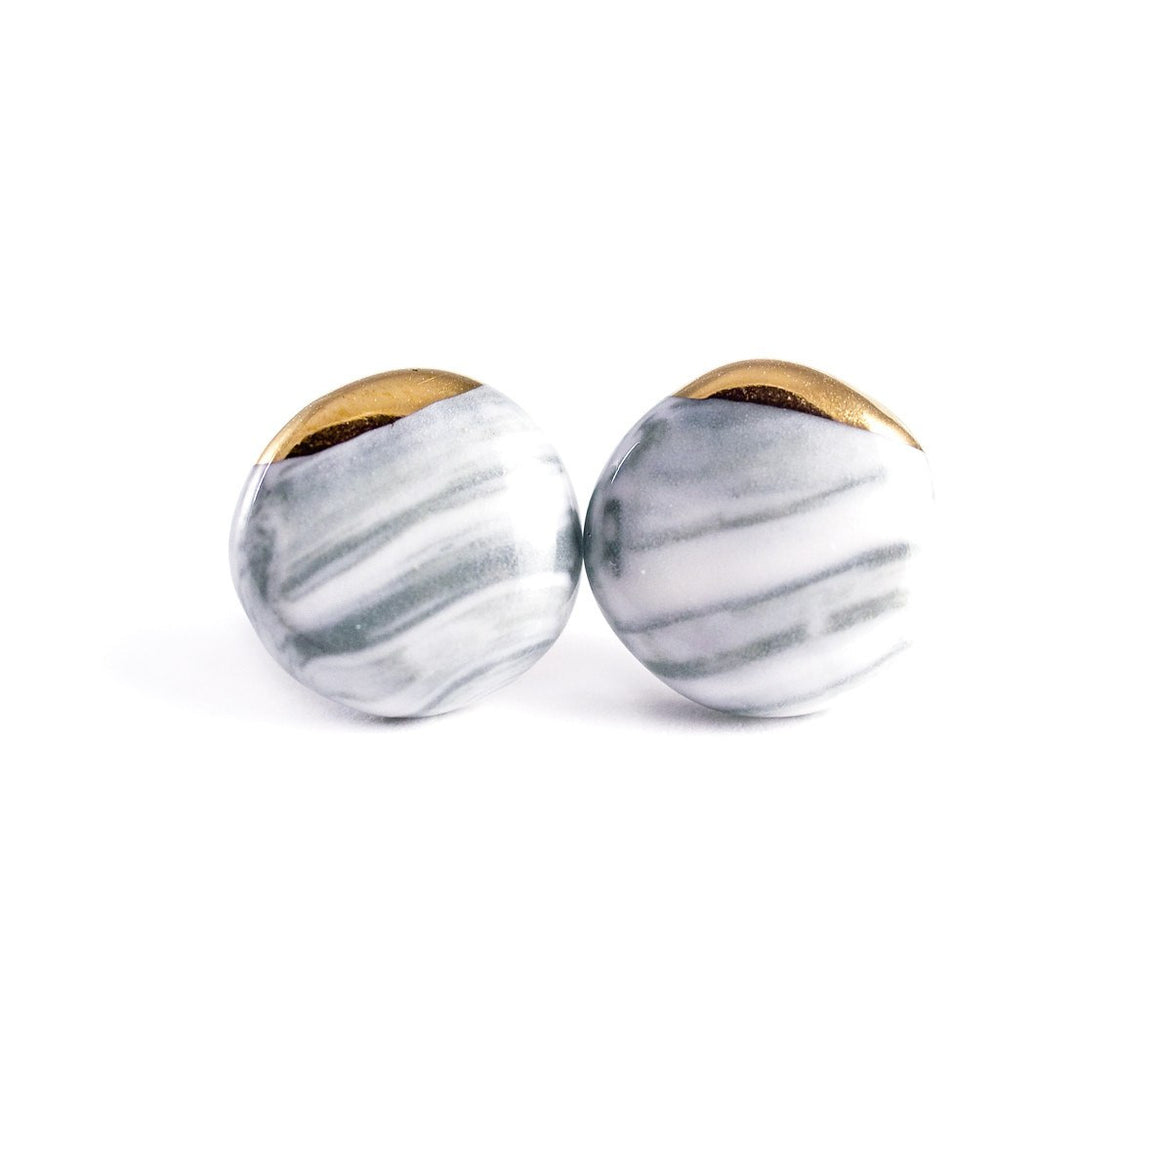 Cecolors Earring Grey Kollidea Accessories